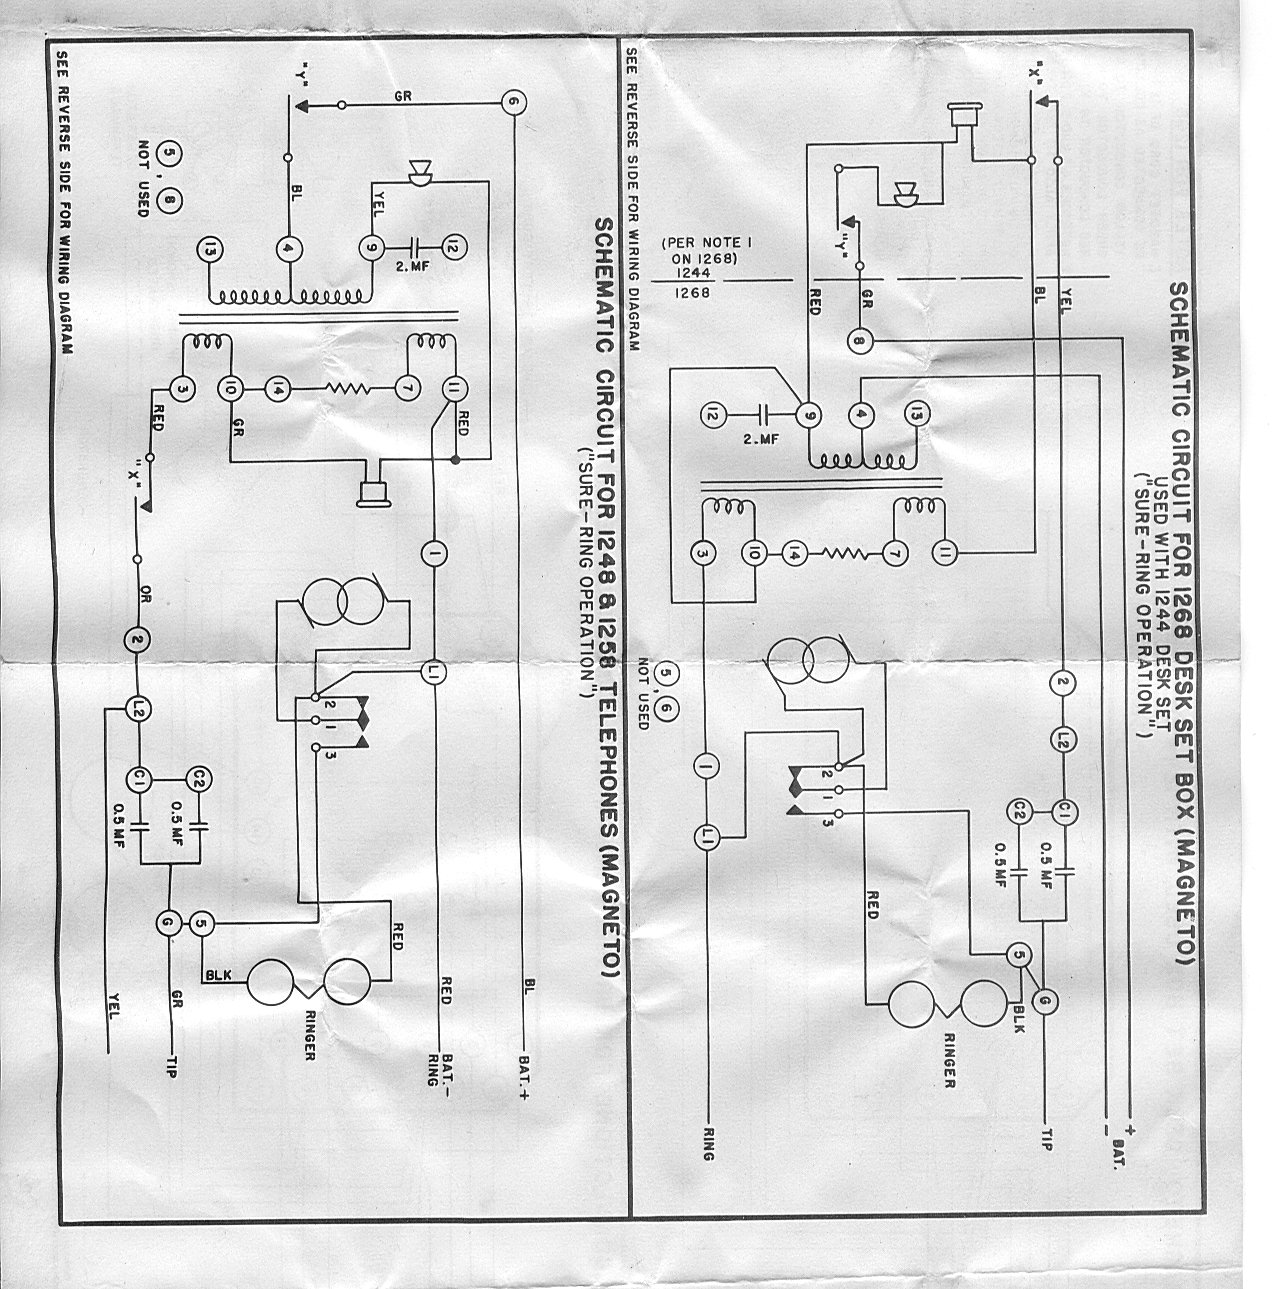 magnetosets2 telephone technical references Antique Phone Wiring Diagram at bayanpartner.co